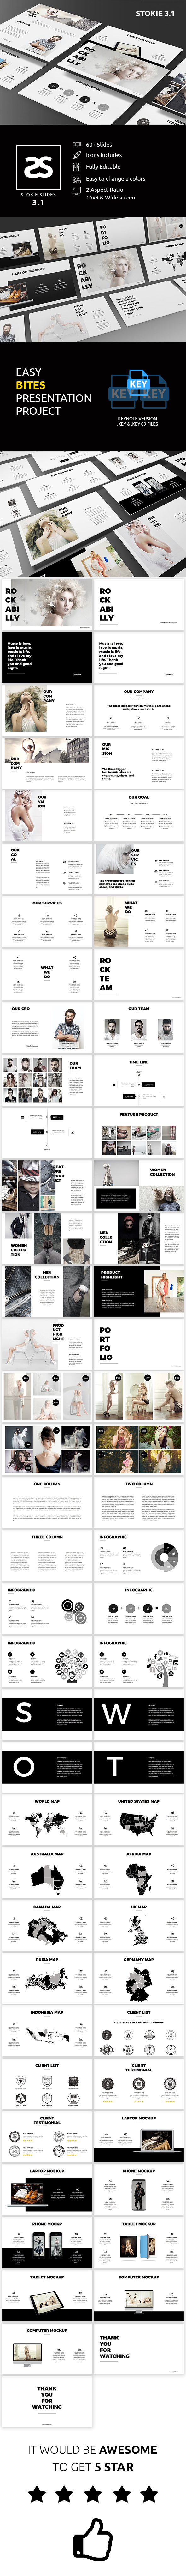 GraphicRiver Fashion Keynote Template 3.1 20811558